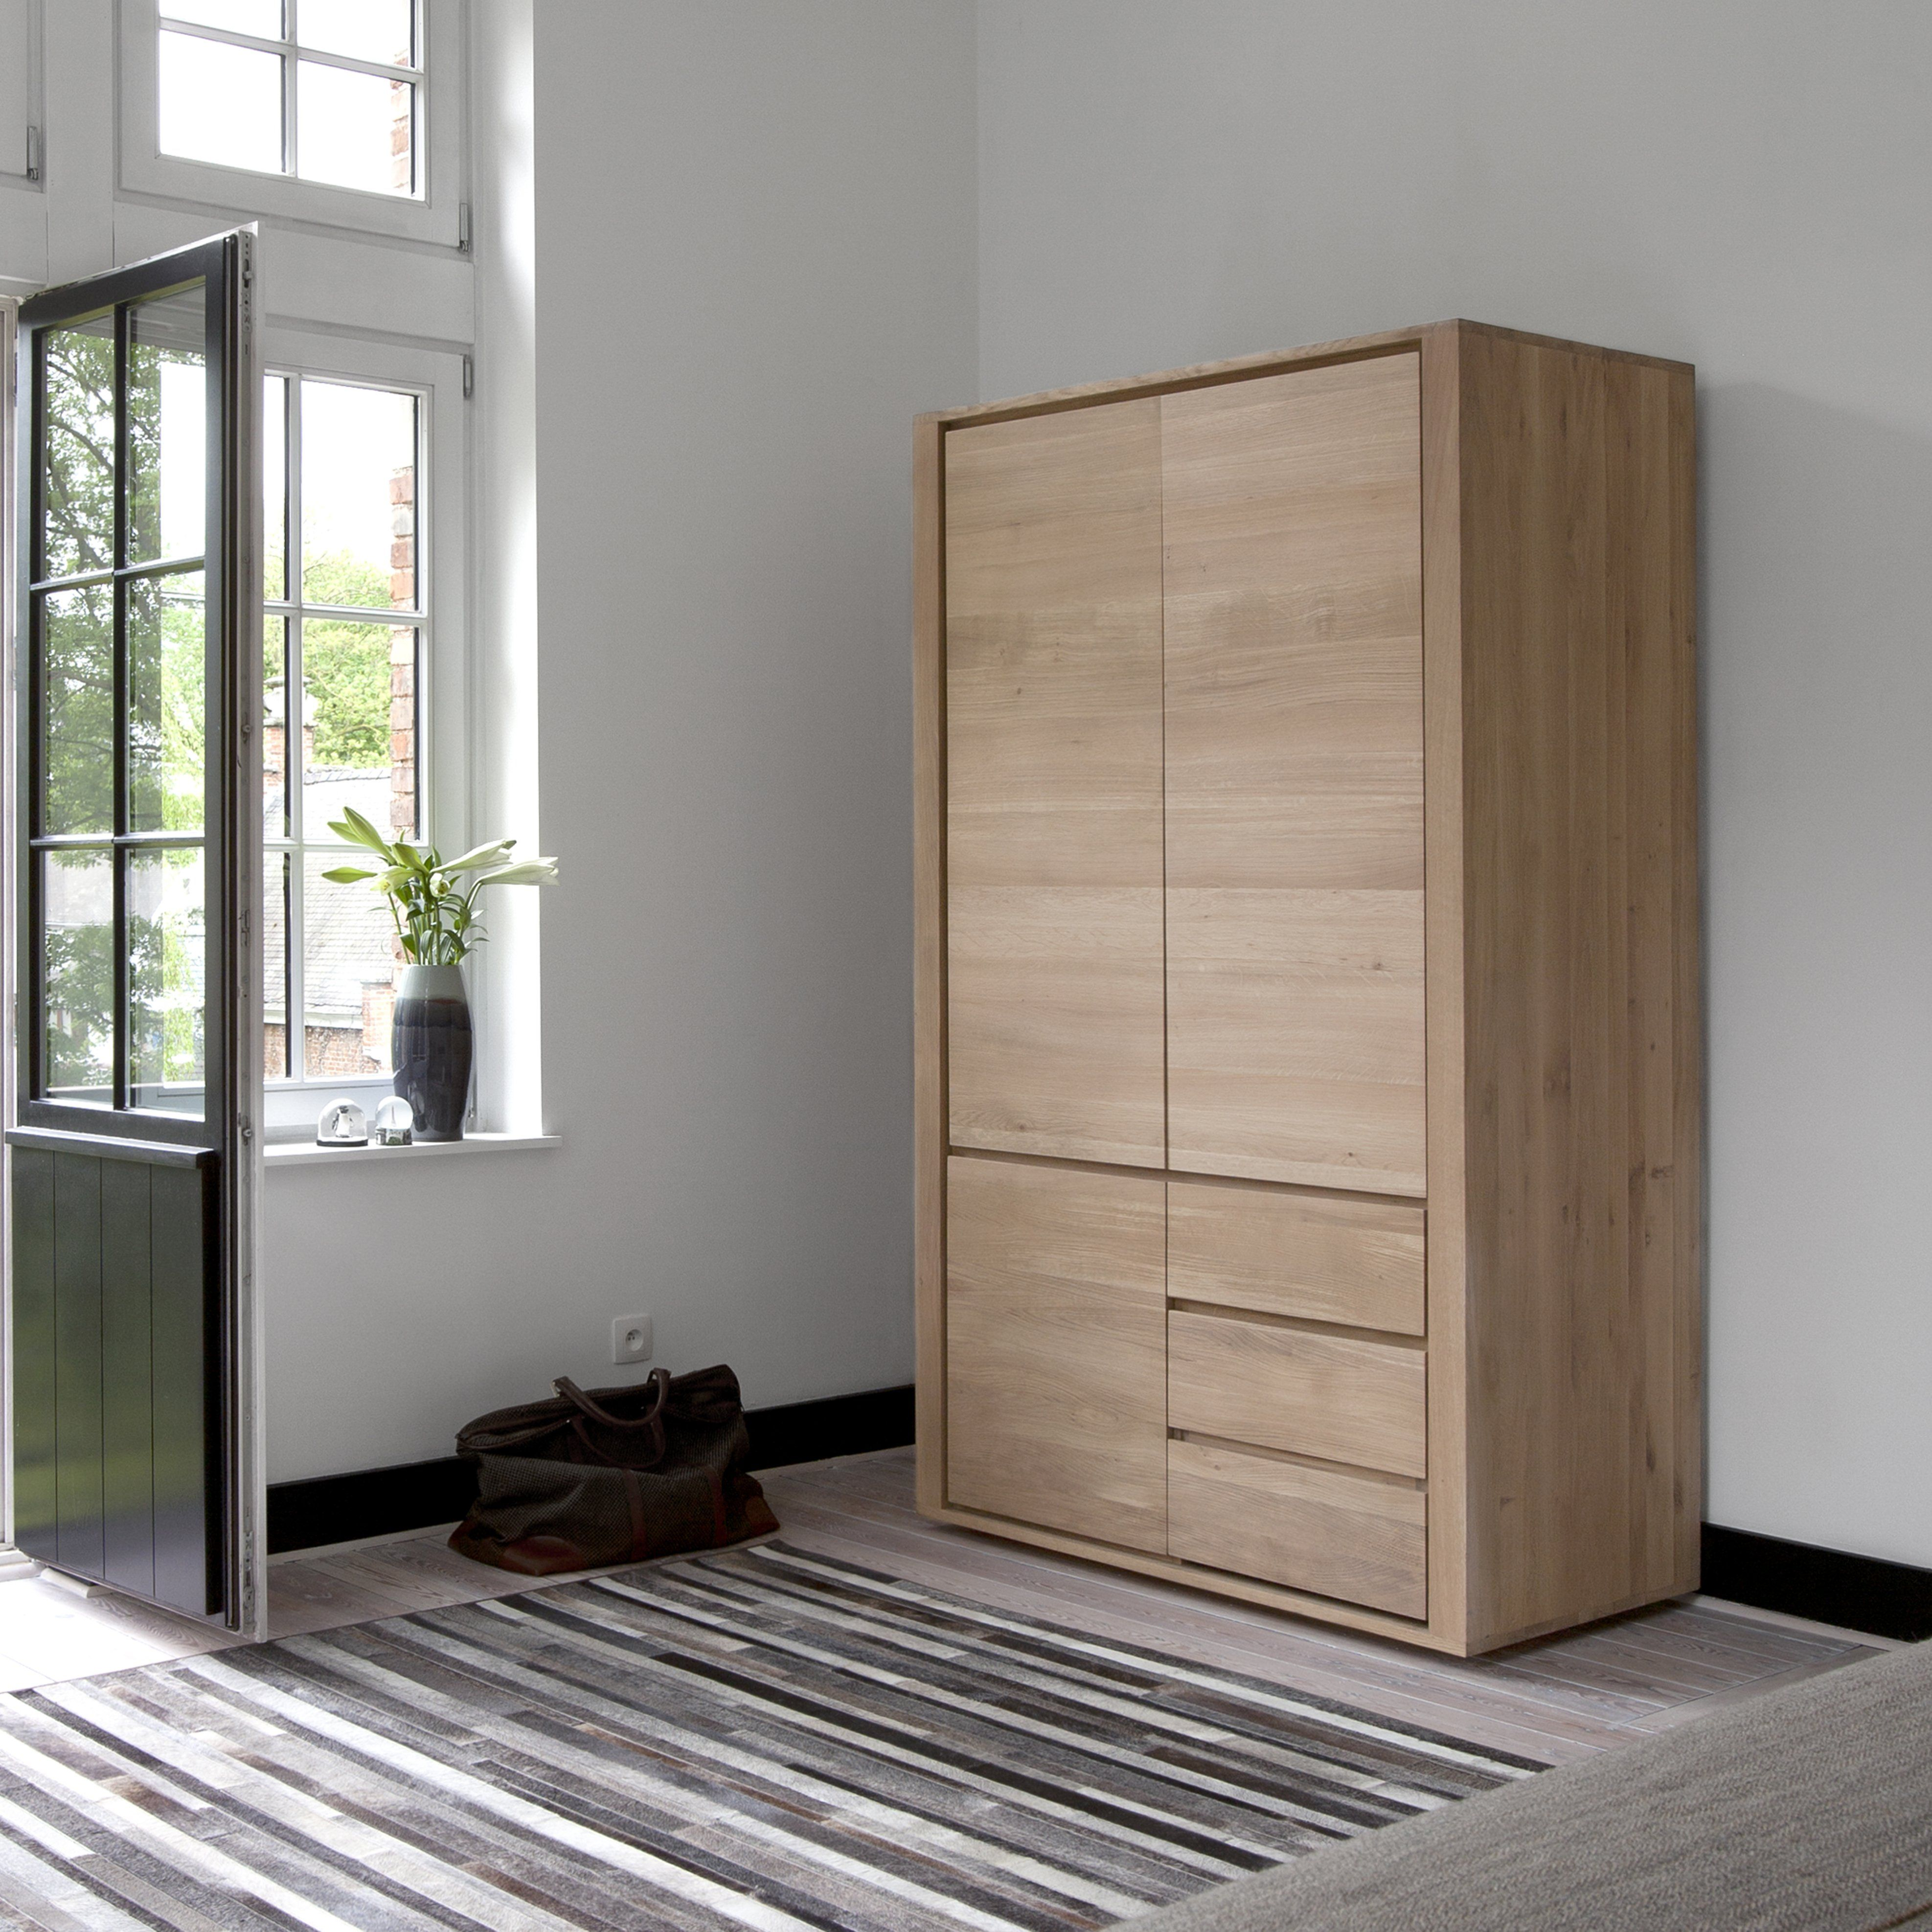 Ethnicraft Oak Shadow Storage Cupboard With 3 Doors 2 Drawers Diseno De Muebles Muebles Muebles Dormitorio